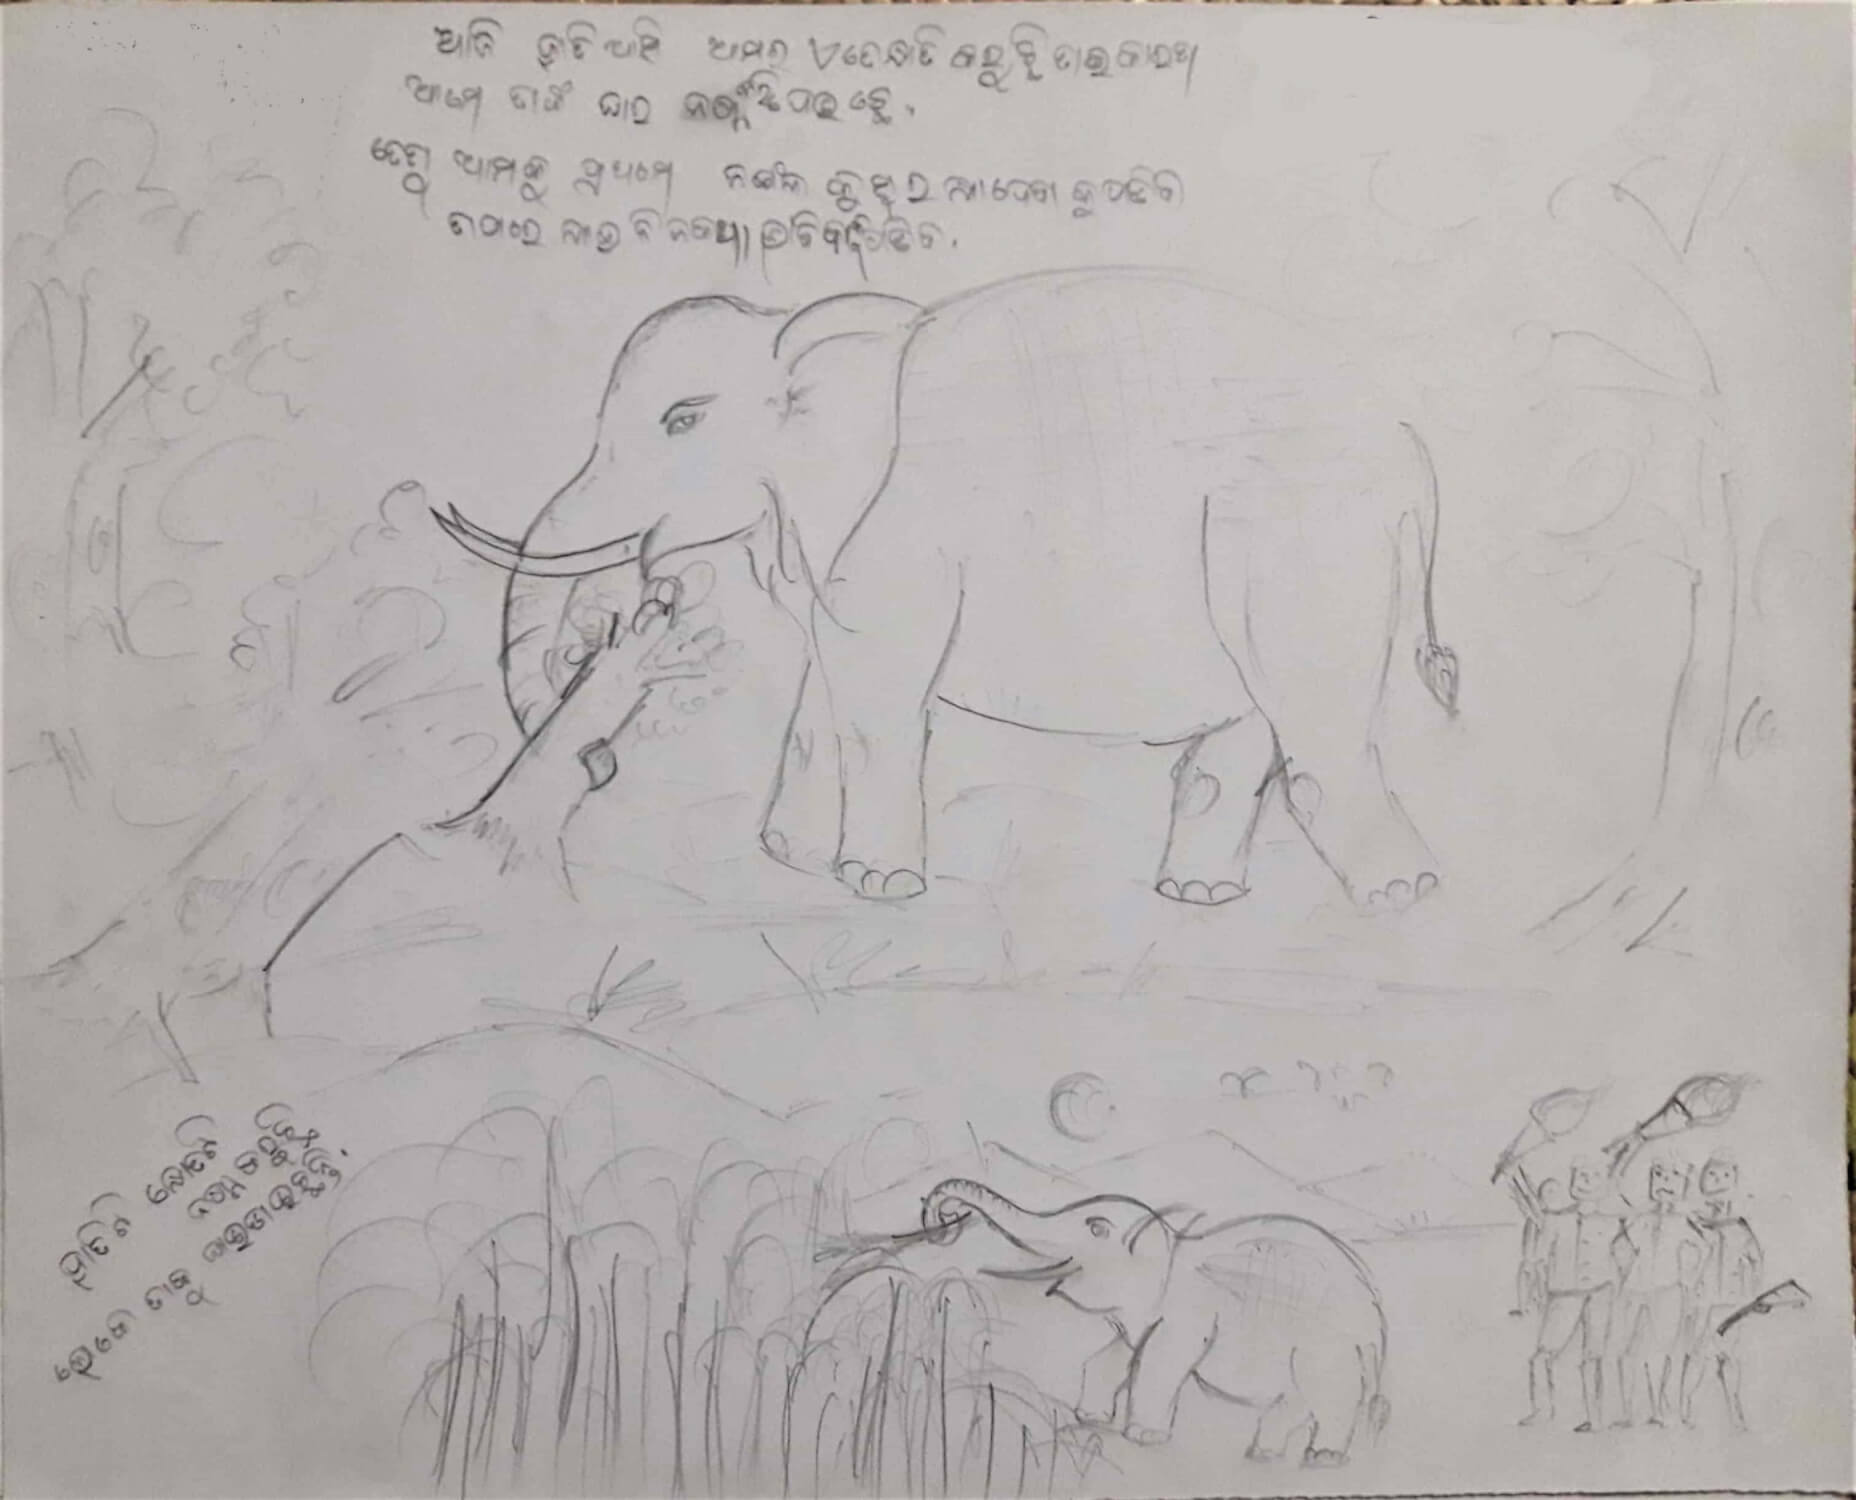 Figure 1: A drawing by a male student depicting various images of elephants that he has witnessed in his village.